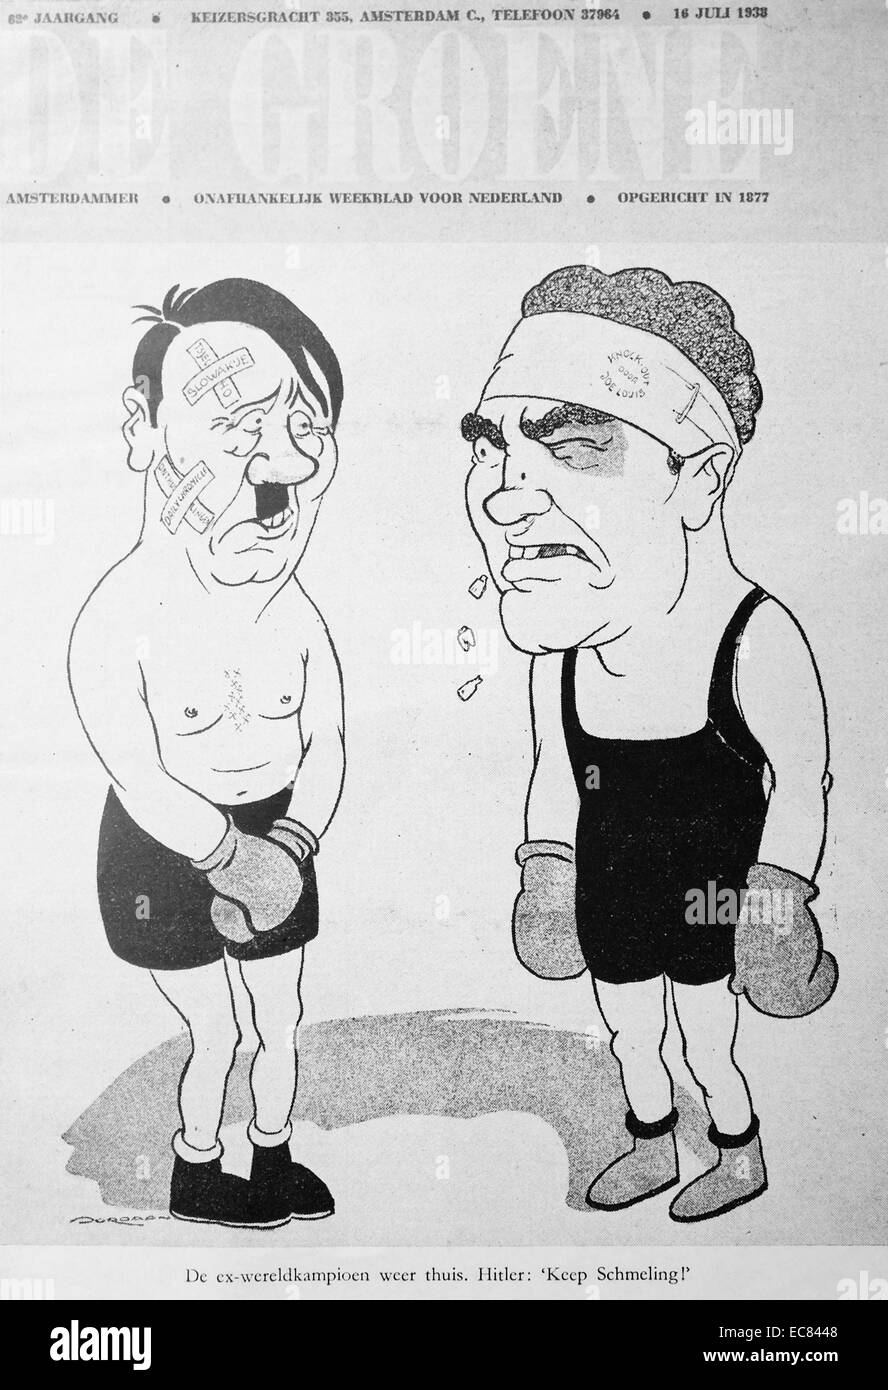 Cartoon of Adolf Hitler in a boxing match with Joe Louis - Stock Image